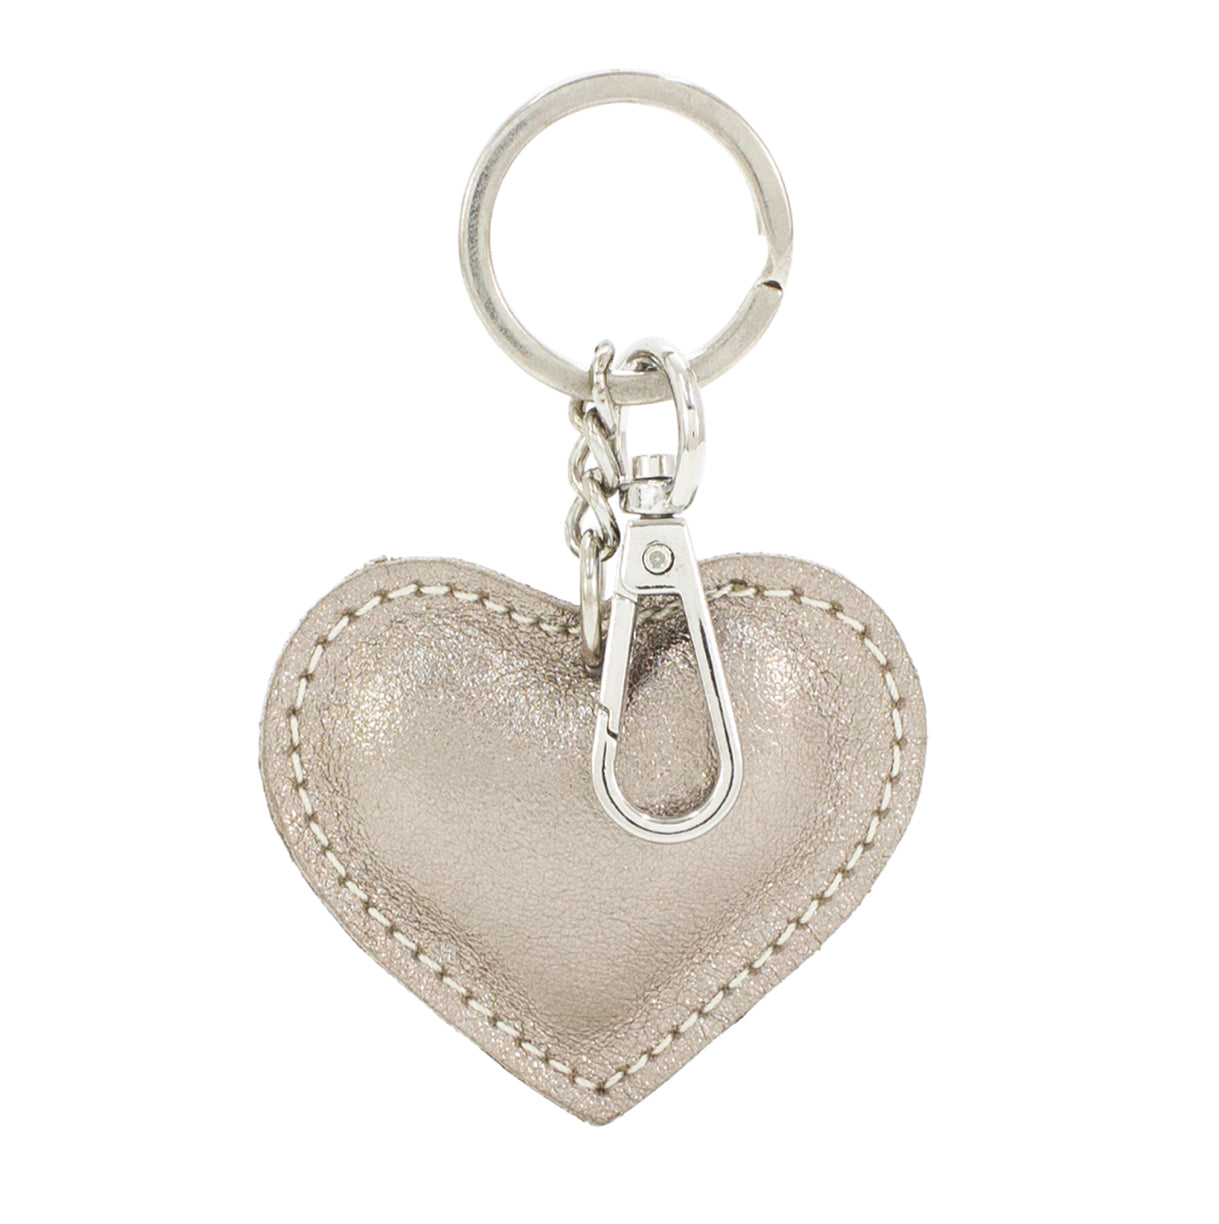 Bronze heart key ring